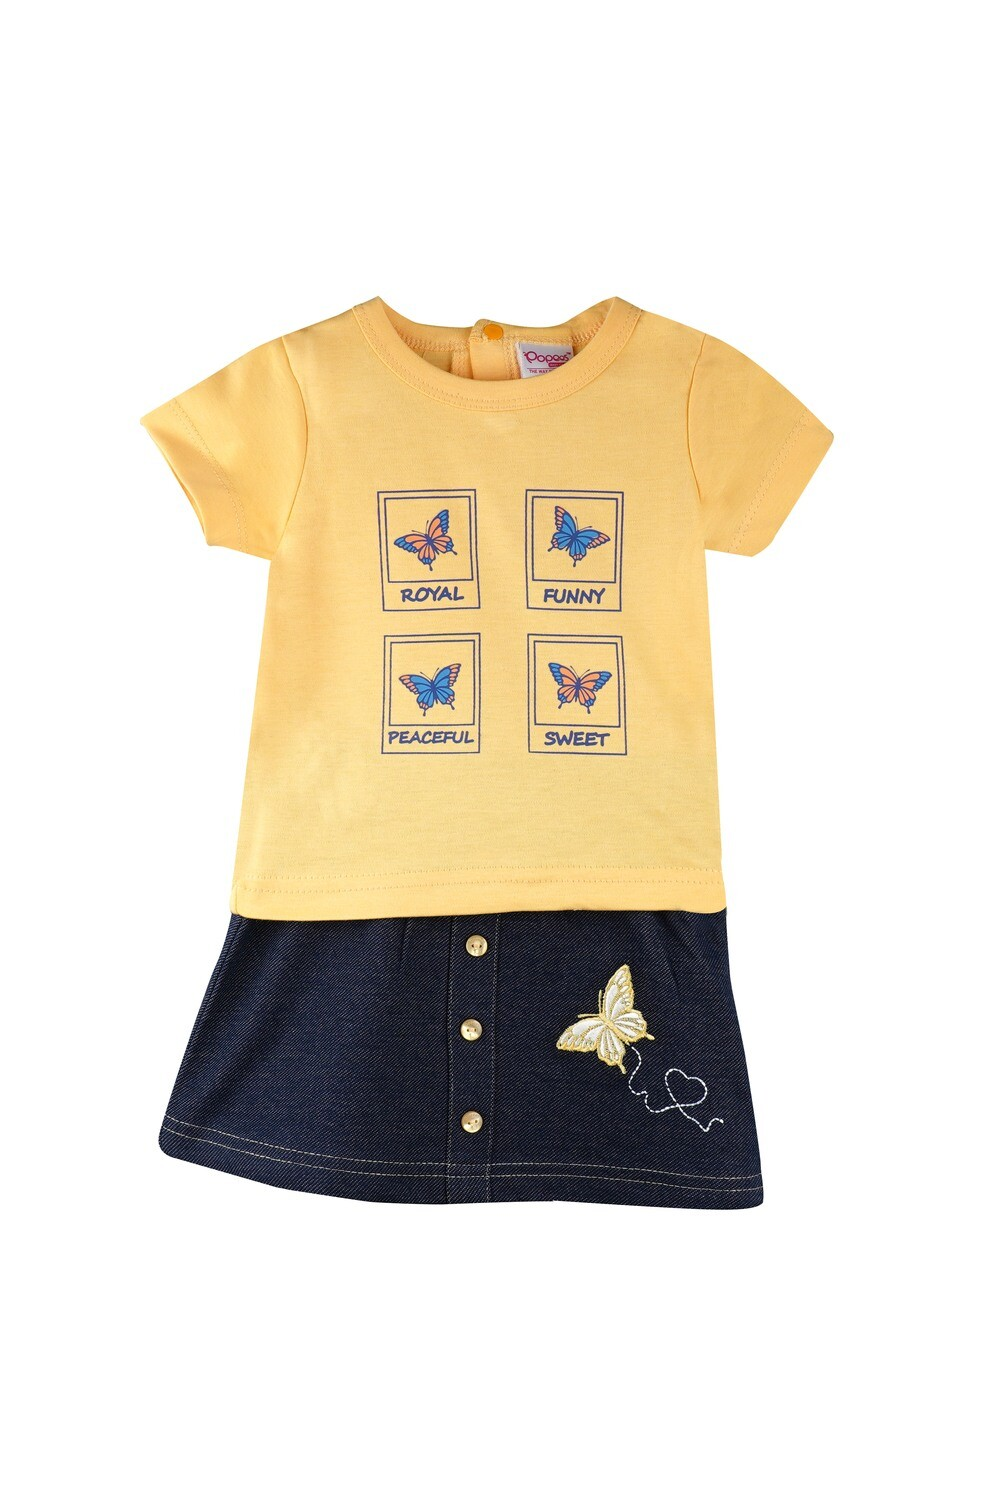 Story Yellow Half Sleeves Round Neck T-Shirt with Butterfly Embroidered Skirt for Girls